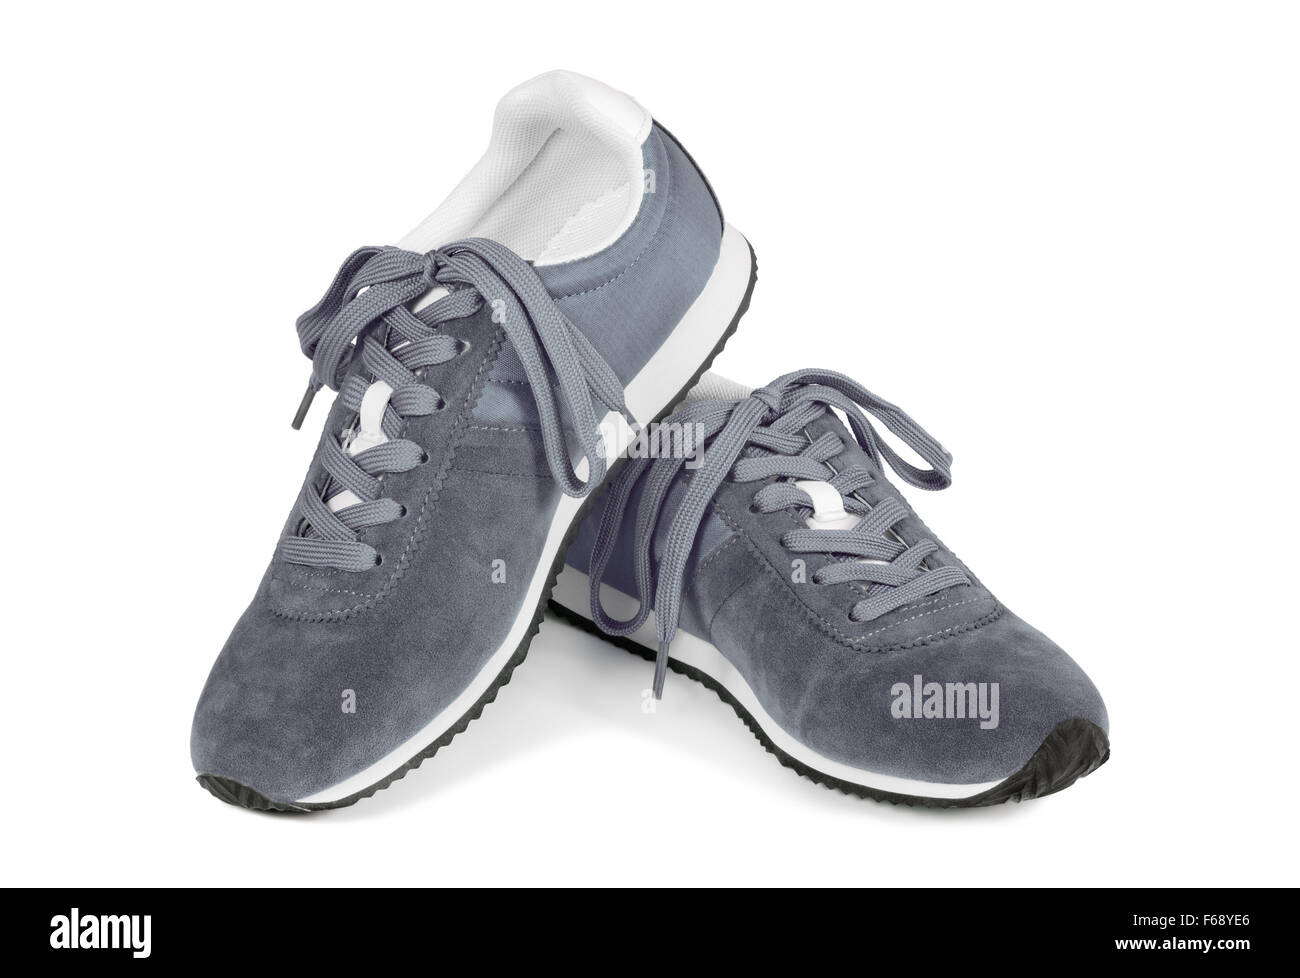 Grey running shoes isolated on white background. Casual style sneakers. - Stock Image